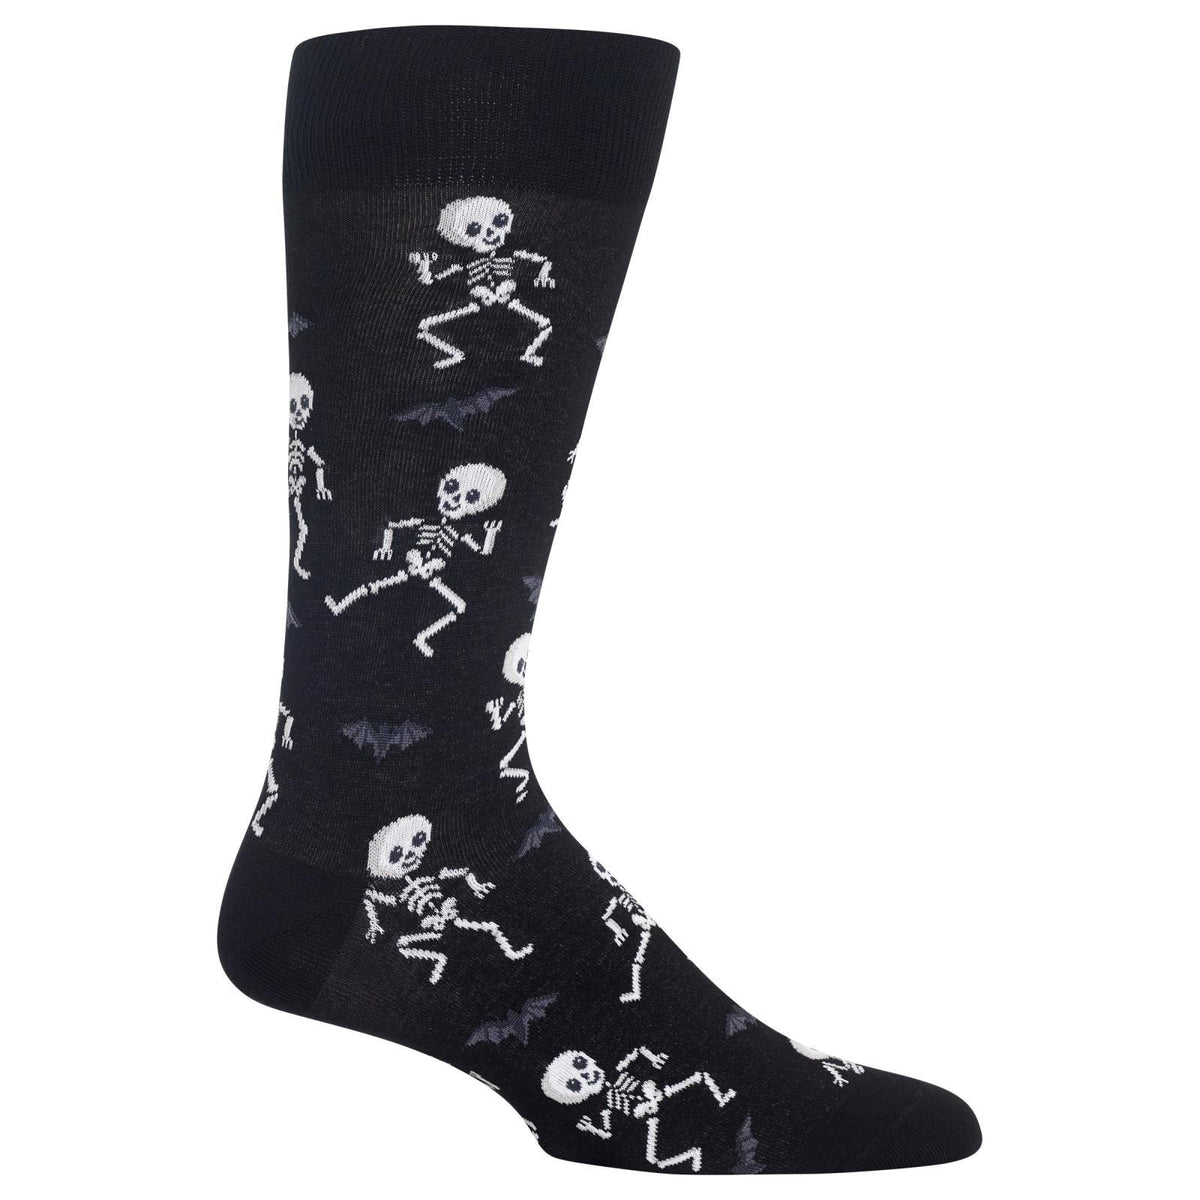 Dancing Skeletons Halloween Socks Men's Crew Sock black